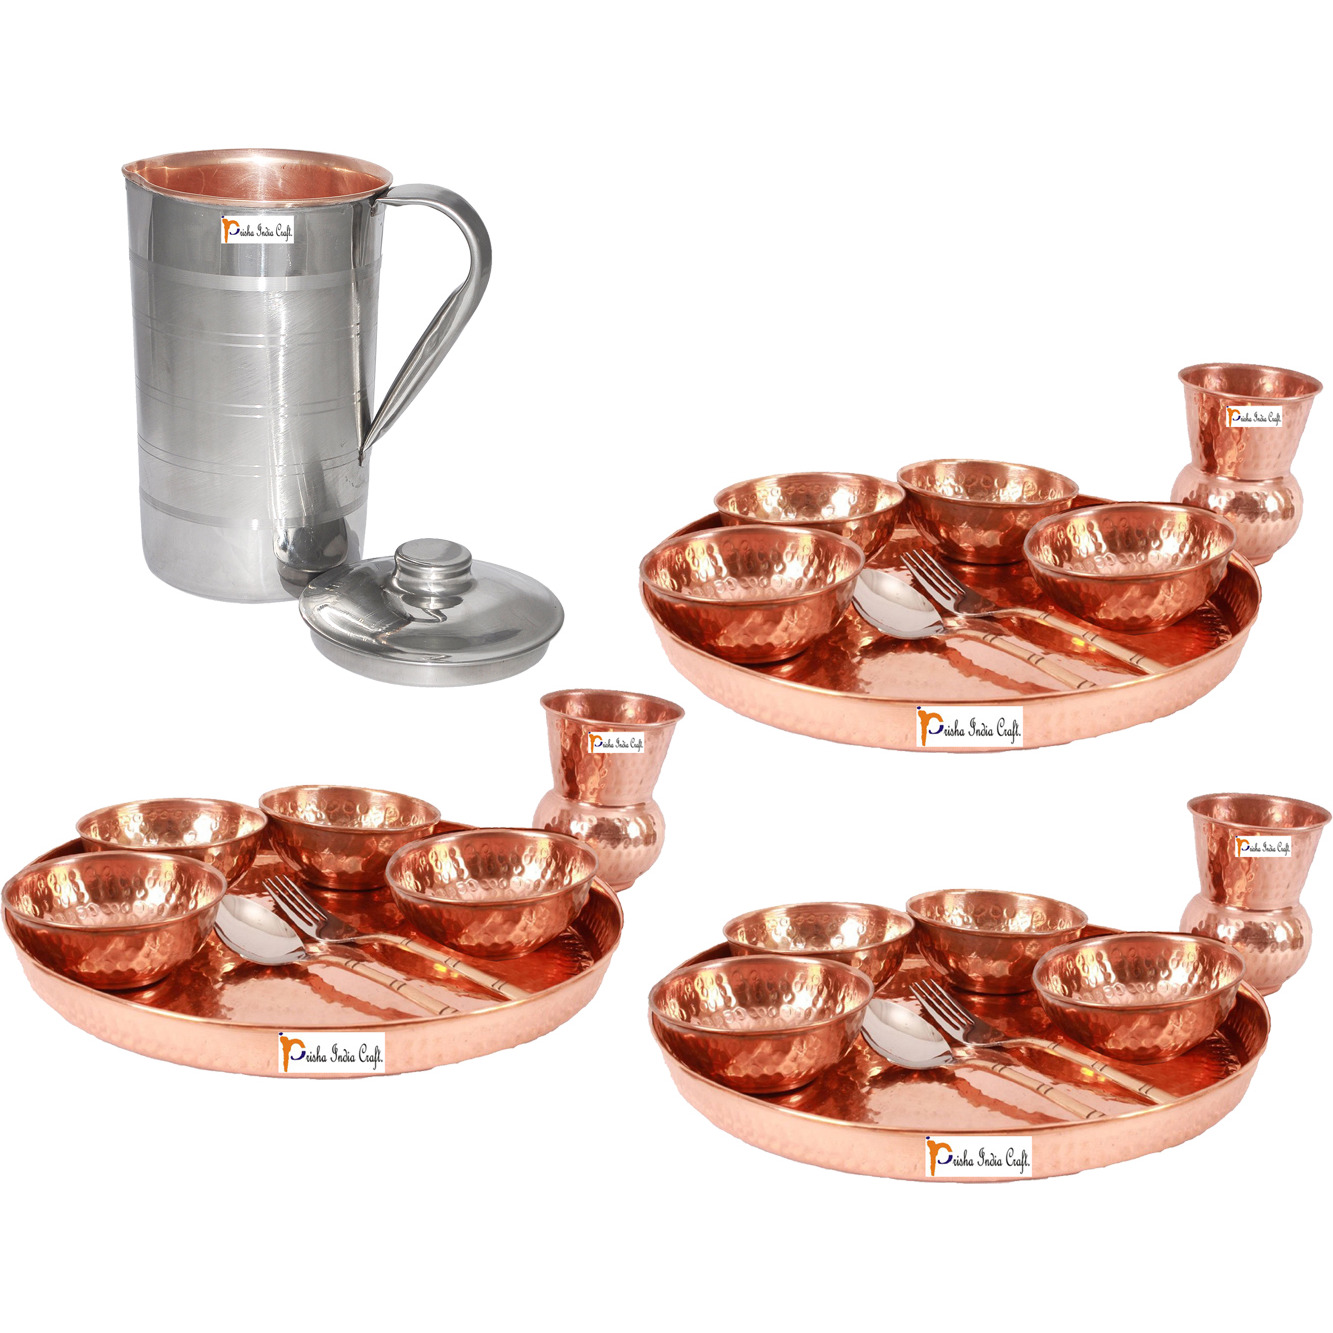 Prisha India Craft B. Set of 3 Dinnerware Traditional 100% Pure Copper Dinner Set of Thali Plate, Bowls, Glass and Spoon, Dia 12  With 1 Luxury Style Pitcher Jug - Christmas Gift